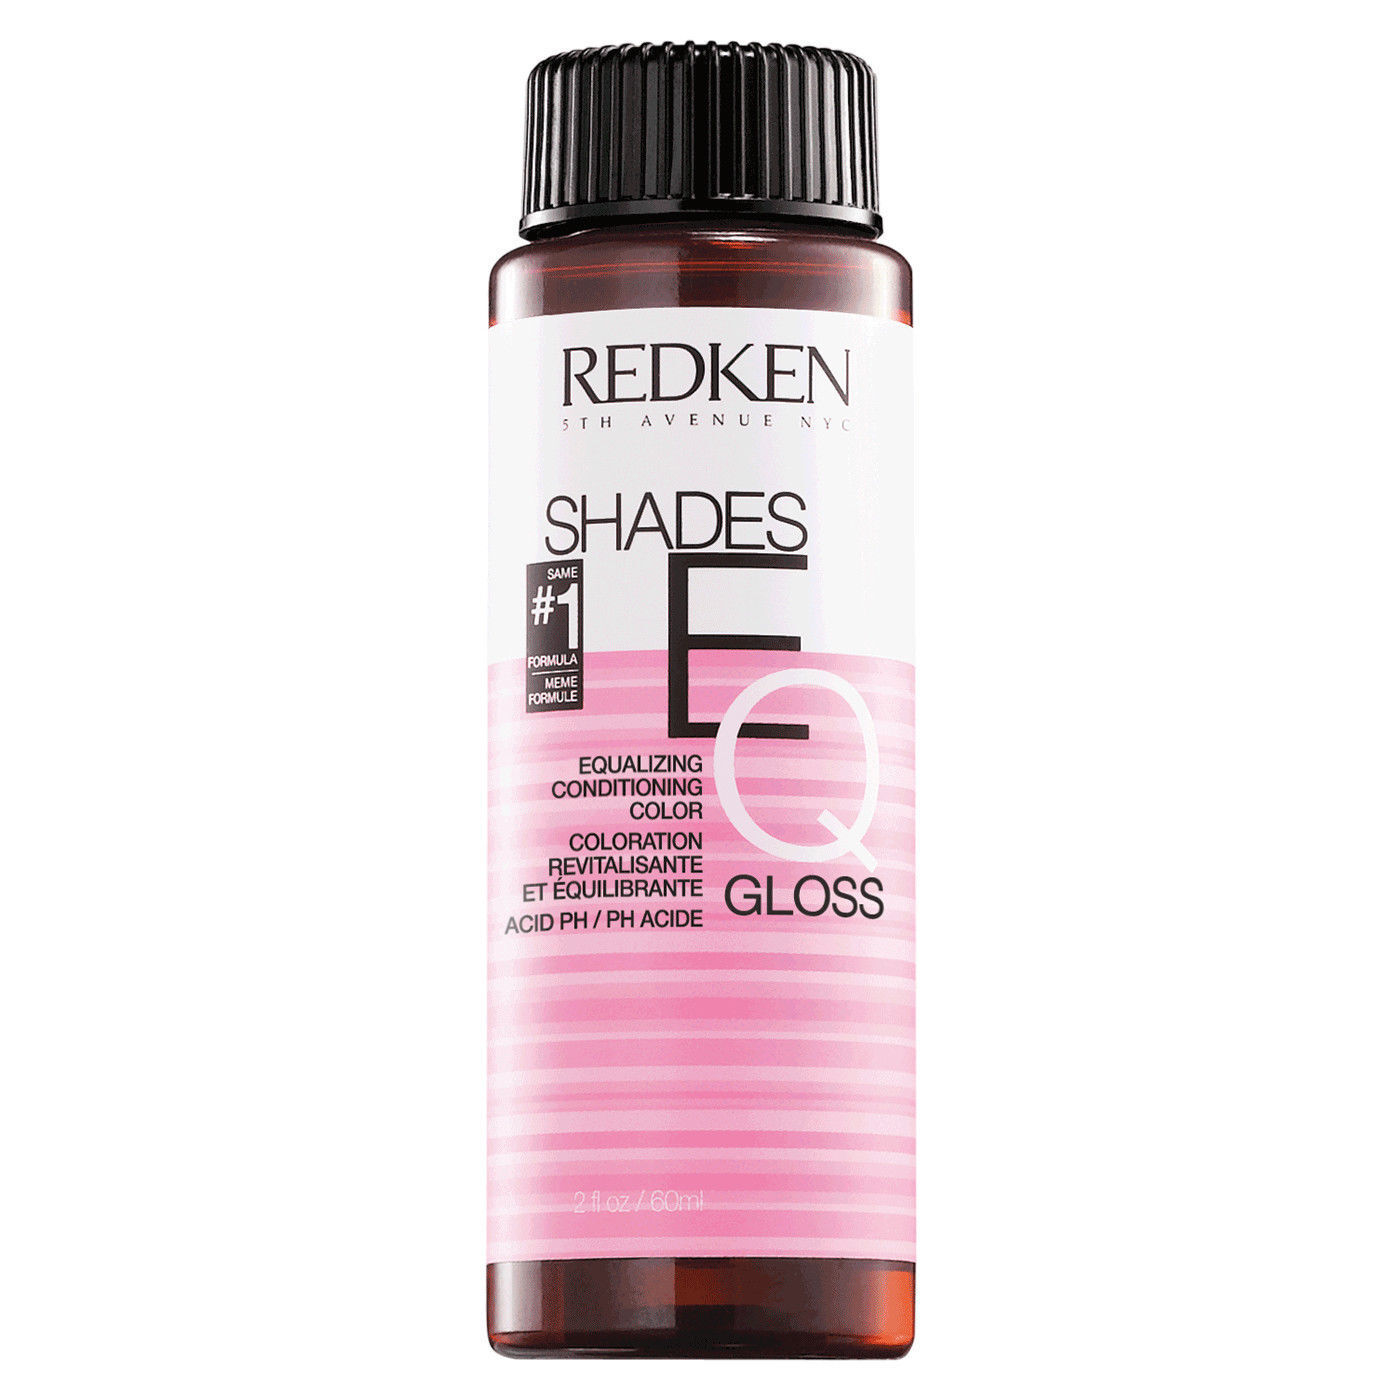 REDKEN SHADES EQ Gloss Hair COLOR ~ 85 COLOR's to CHOOSE Fro